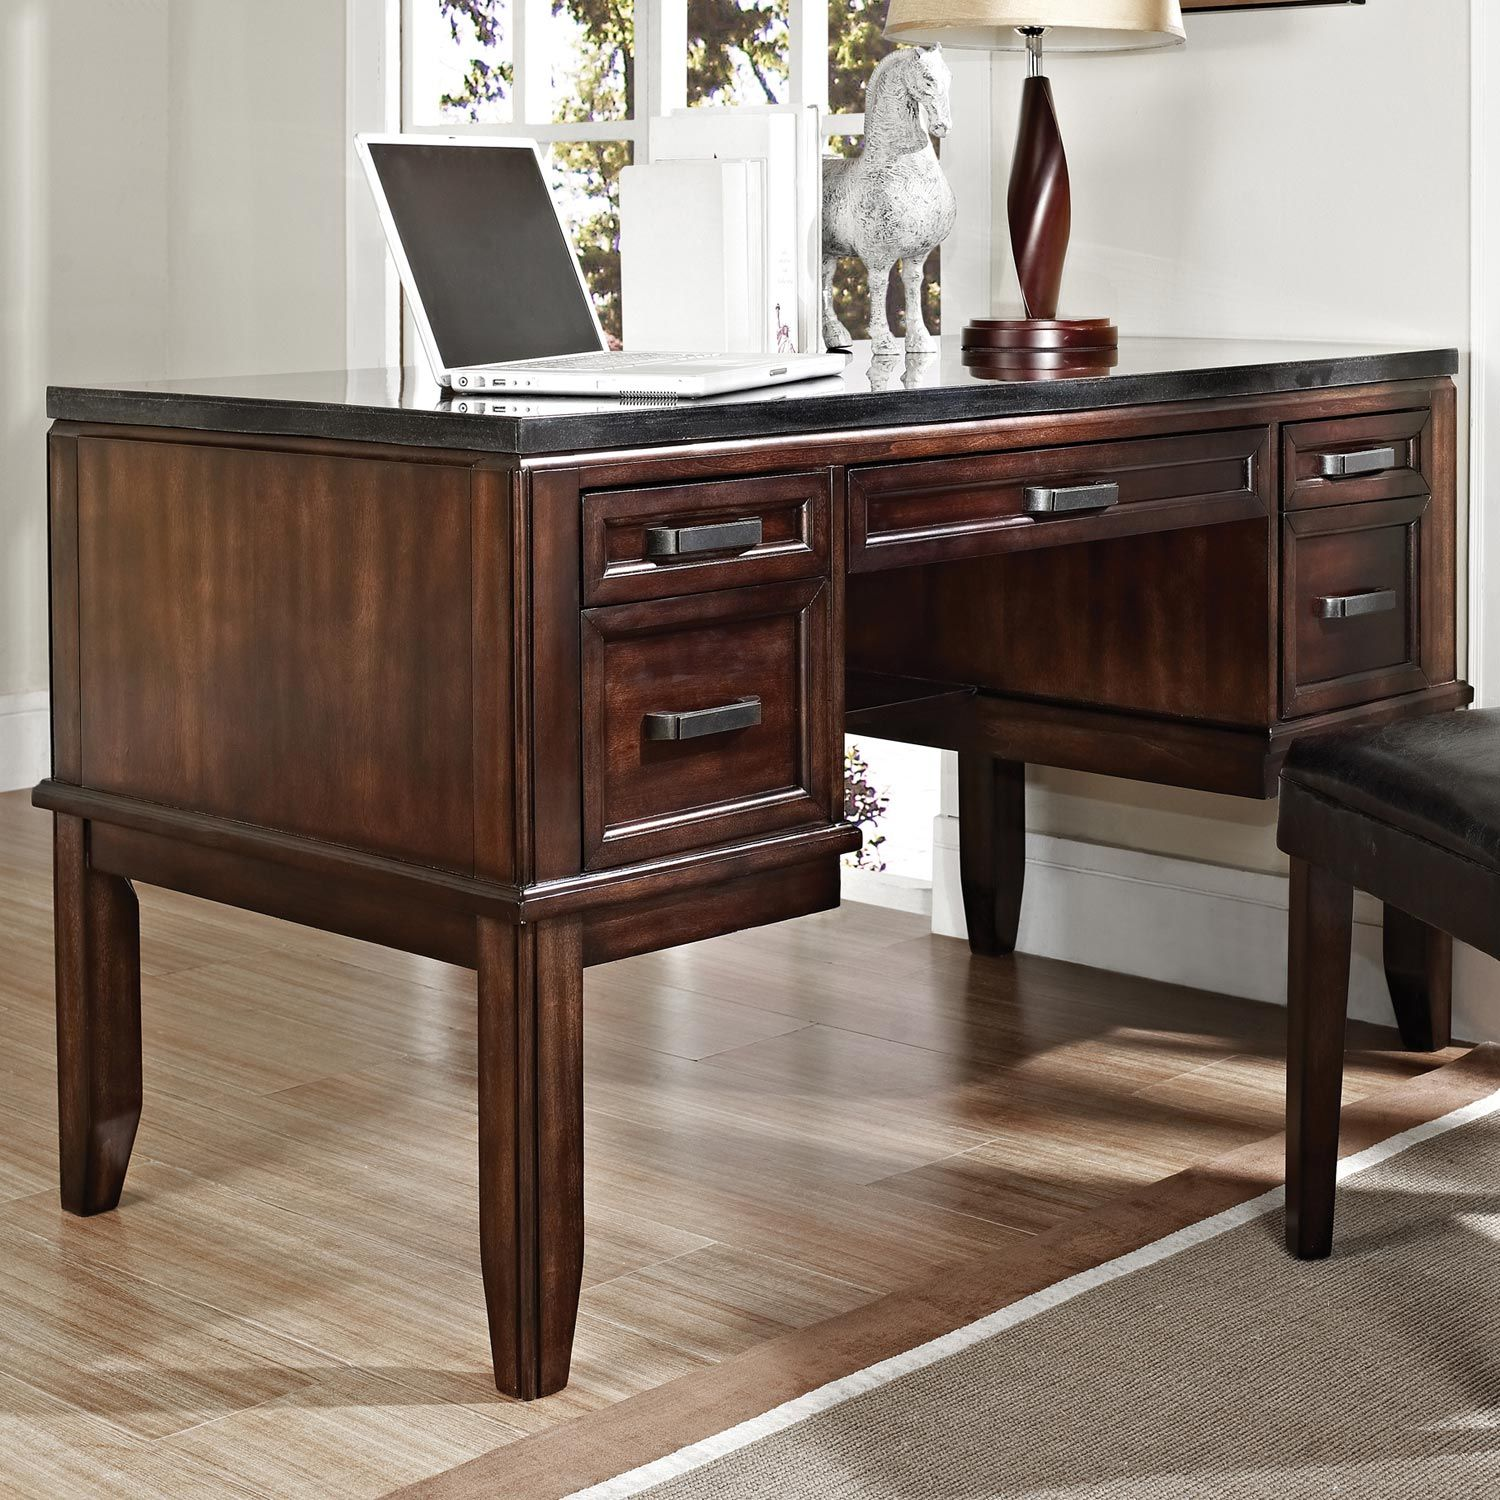 Chamberlain Writing Desk Black Top Dark Cherry Wood Cherry Wood Desk Solid Oak Desk Wood Desk